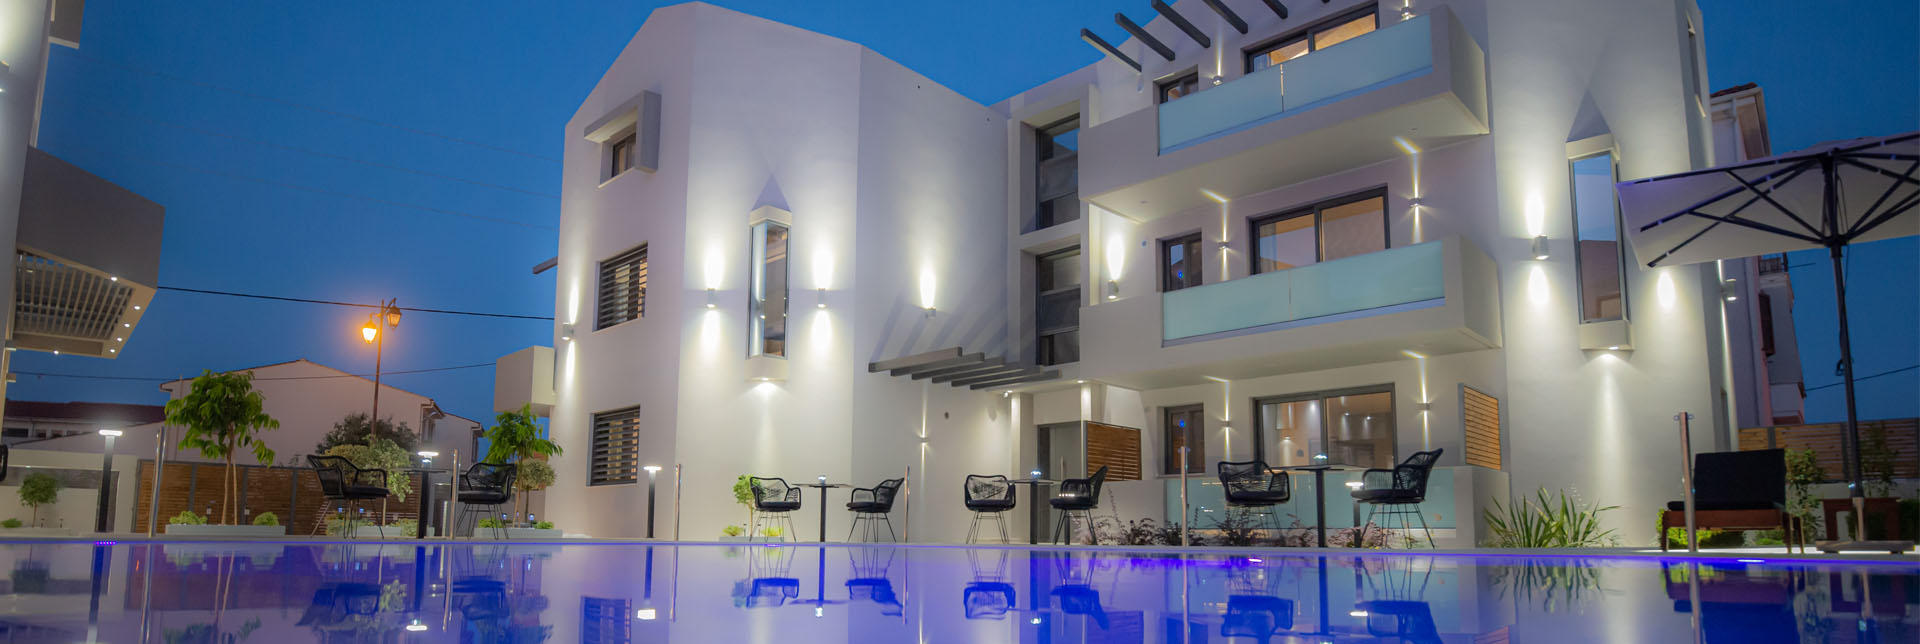 The Victoria Lefkada Luxury Suites Apartments Studios Privacy Policy & Cookies Slider